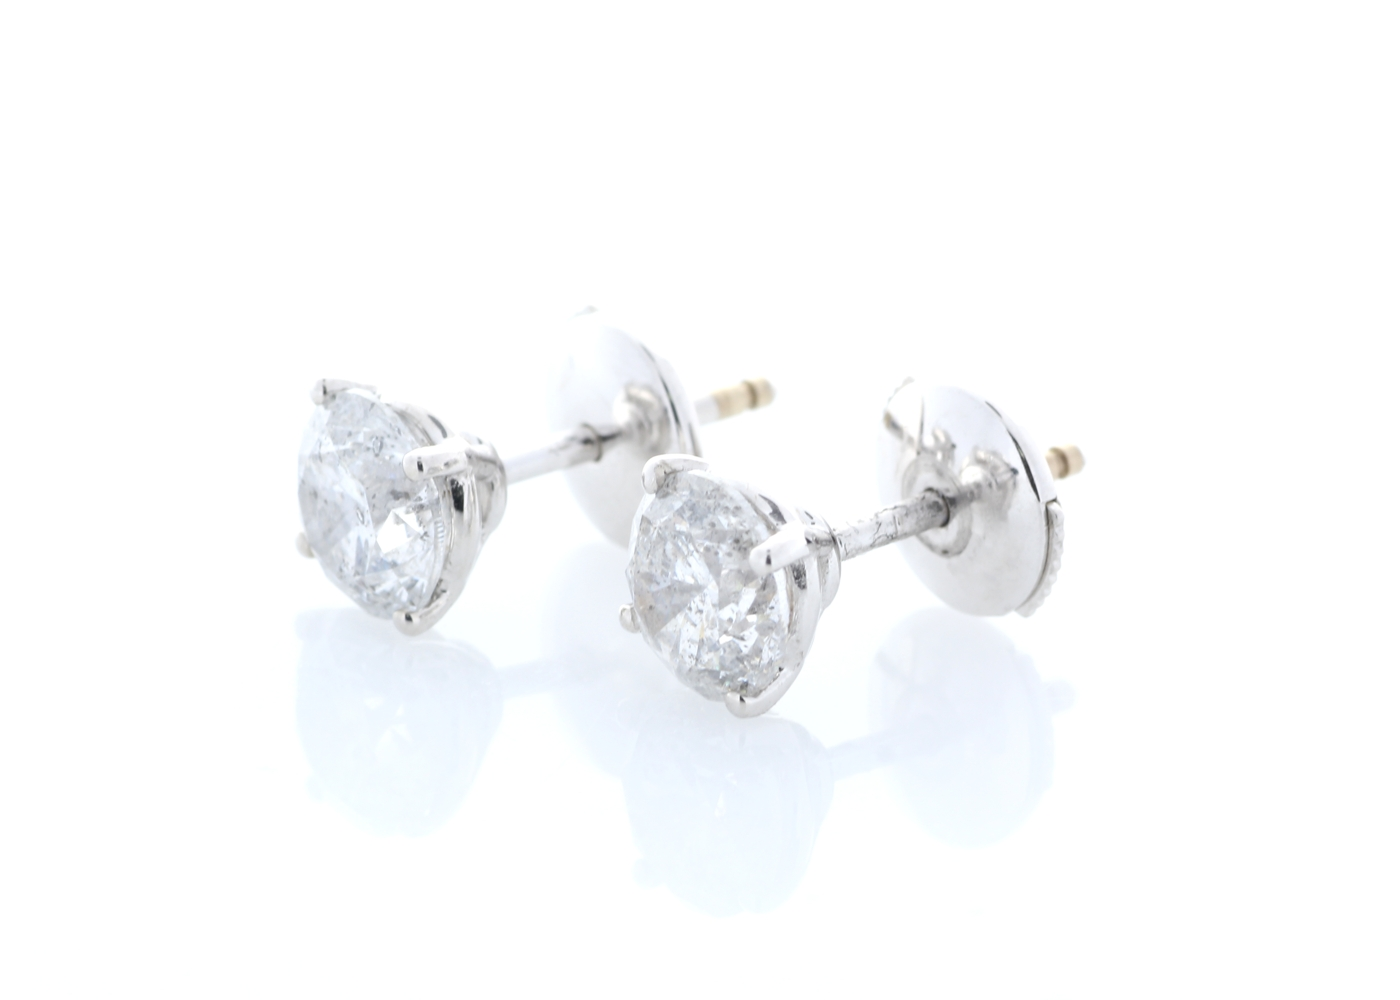 Lot 30 - 18ct White Gold Claw Set Diamond Earrings 2.36 Carats